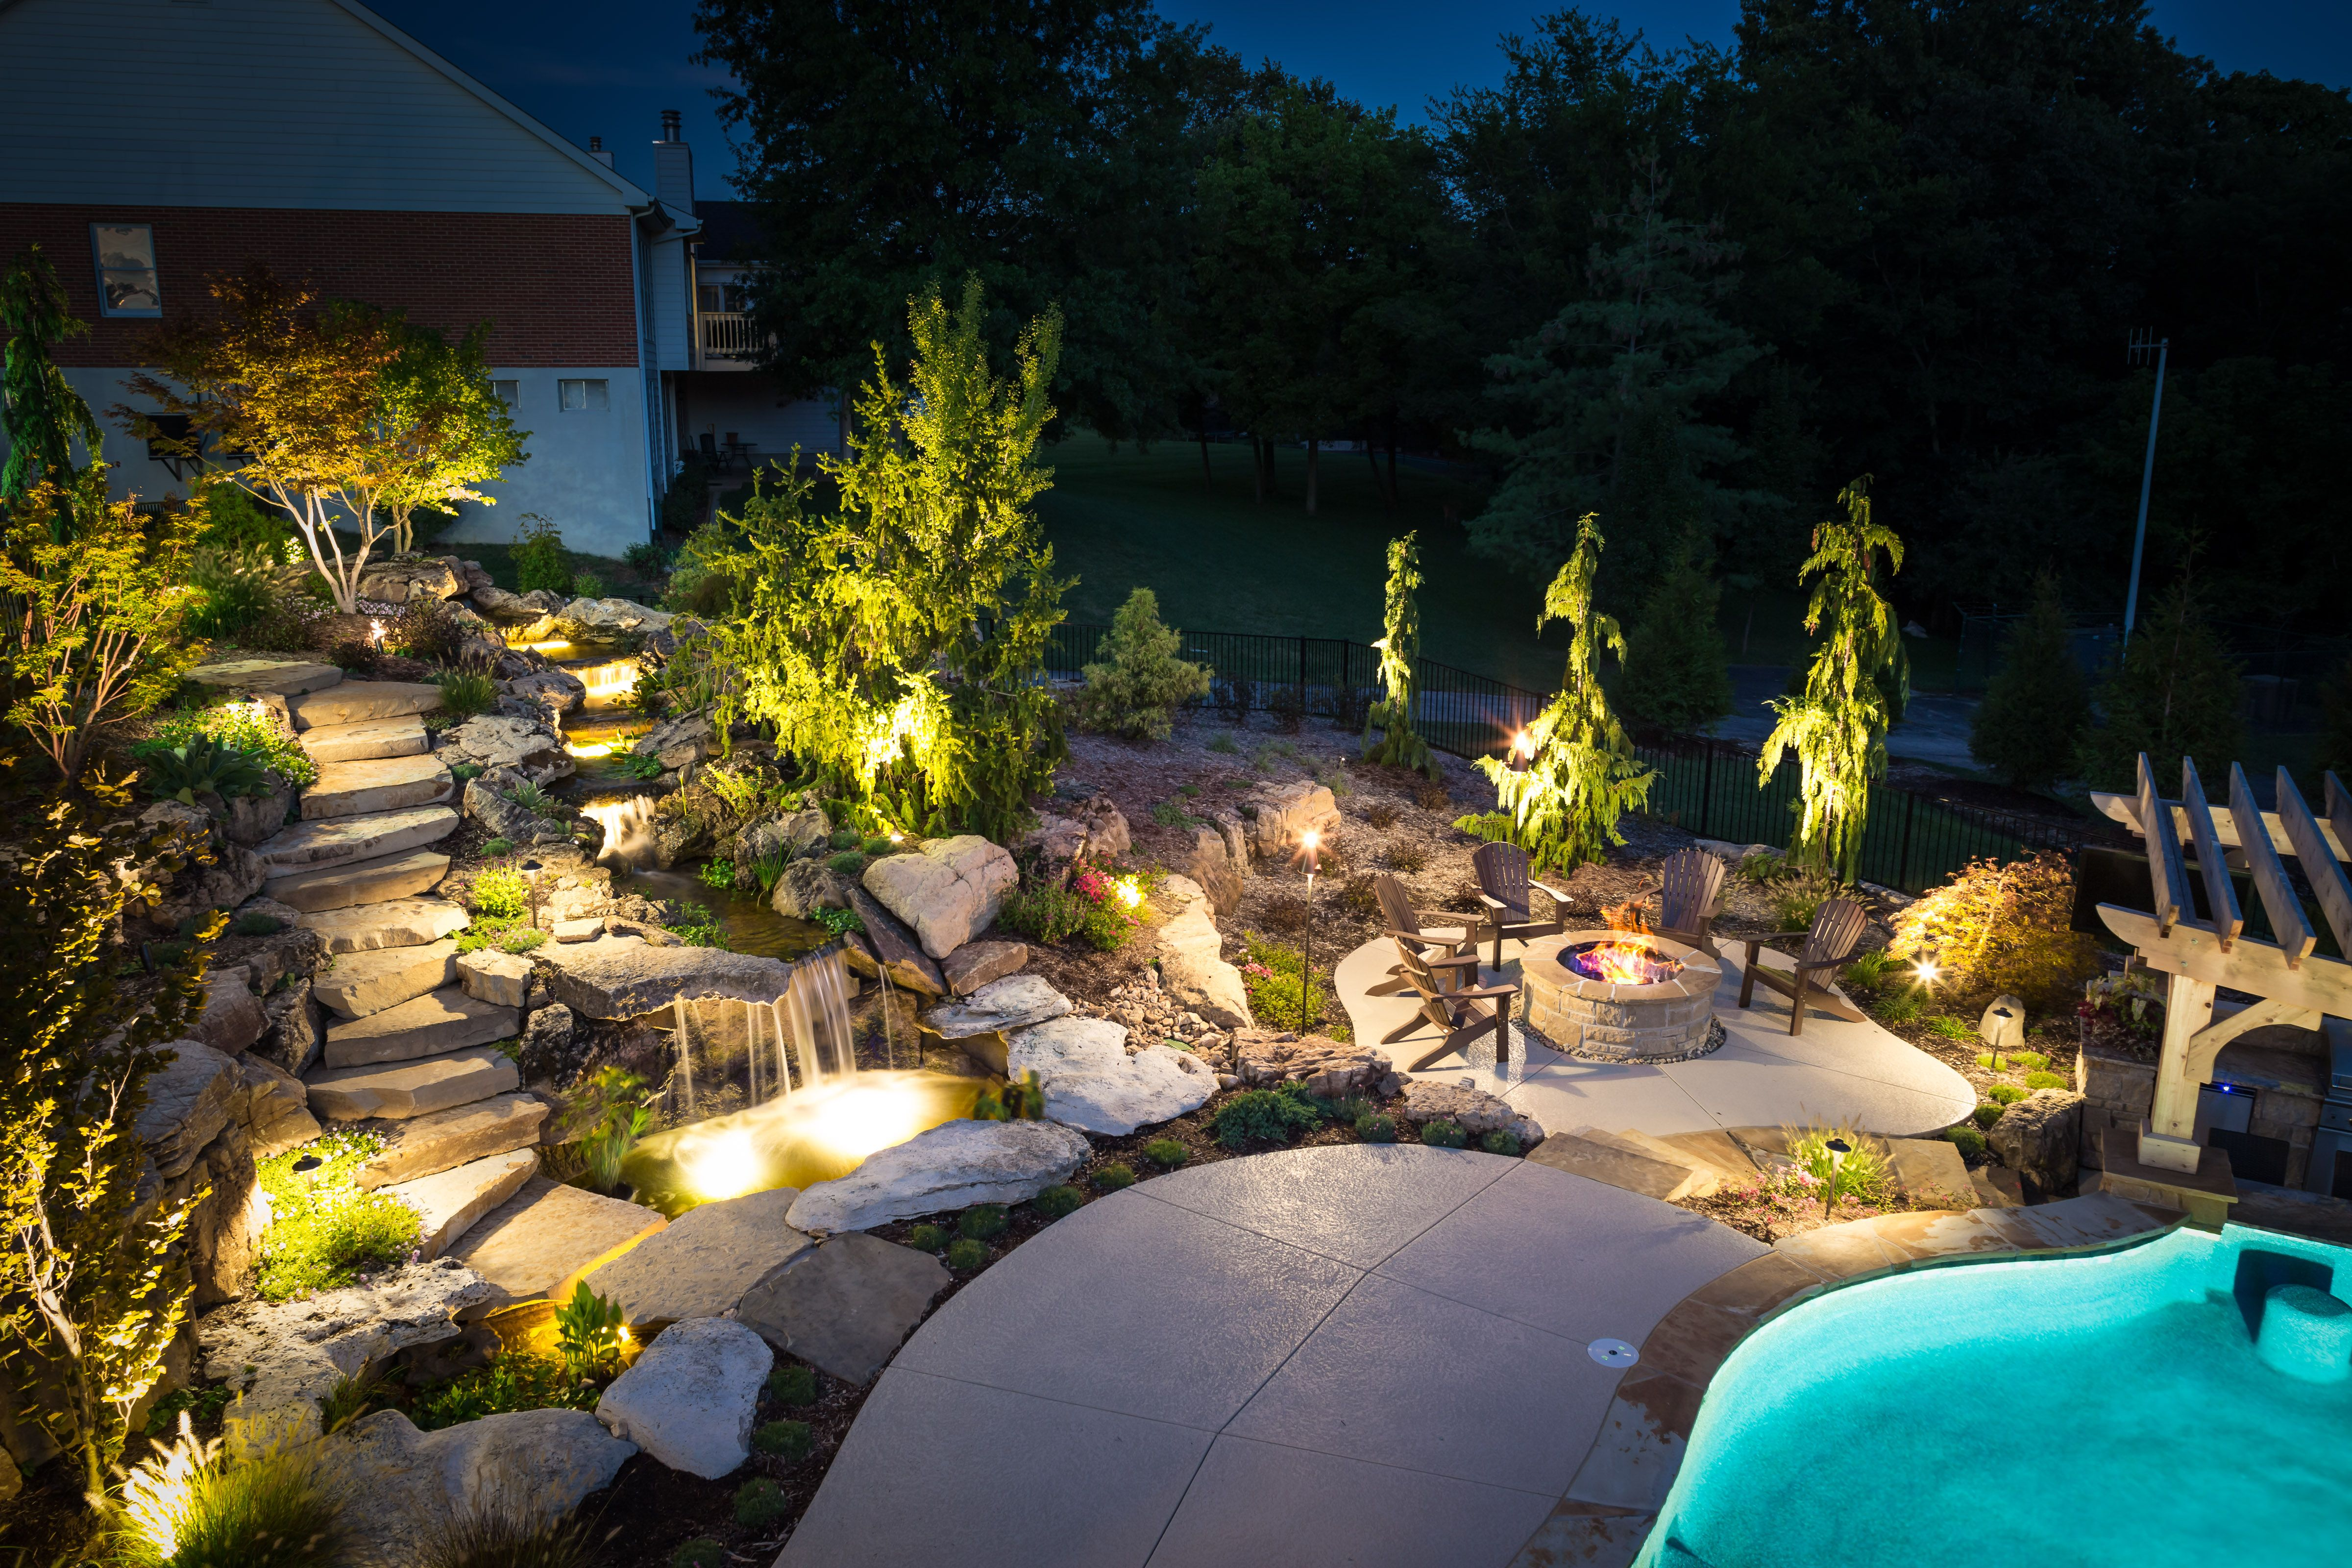 Pool Outdoor Kitchen And Waterfall In St Louis Mo Outdoor Design Backyard